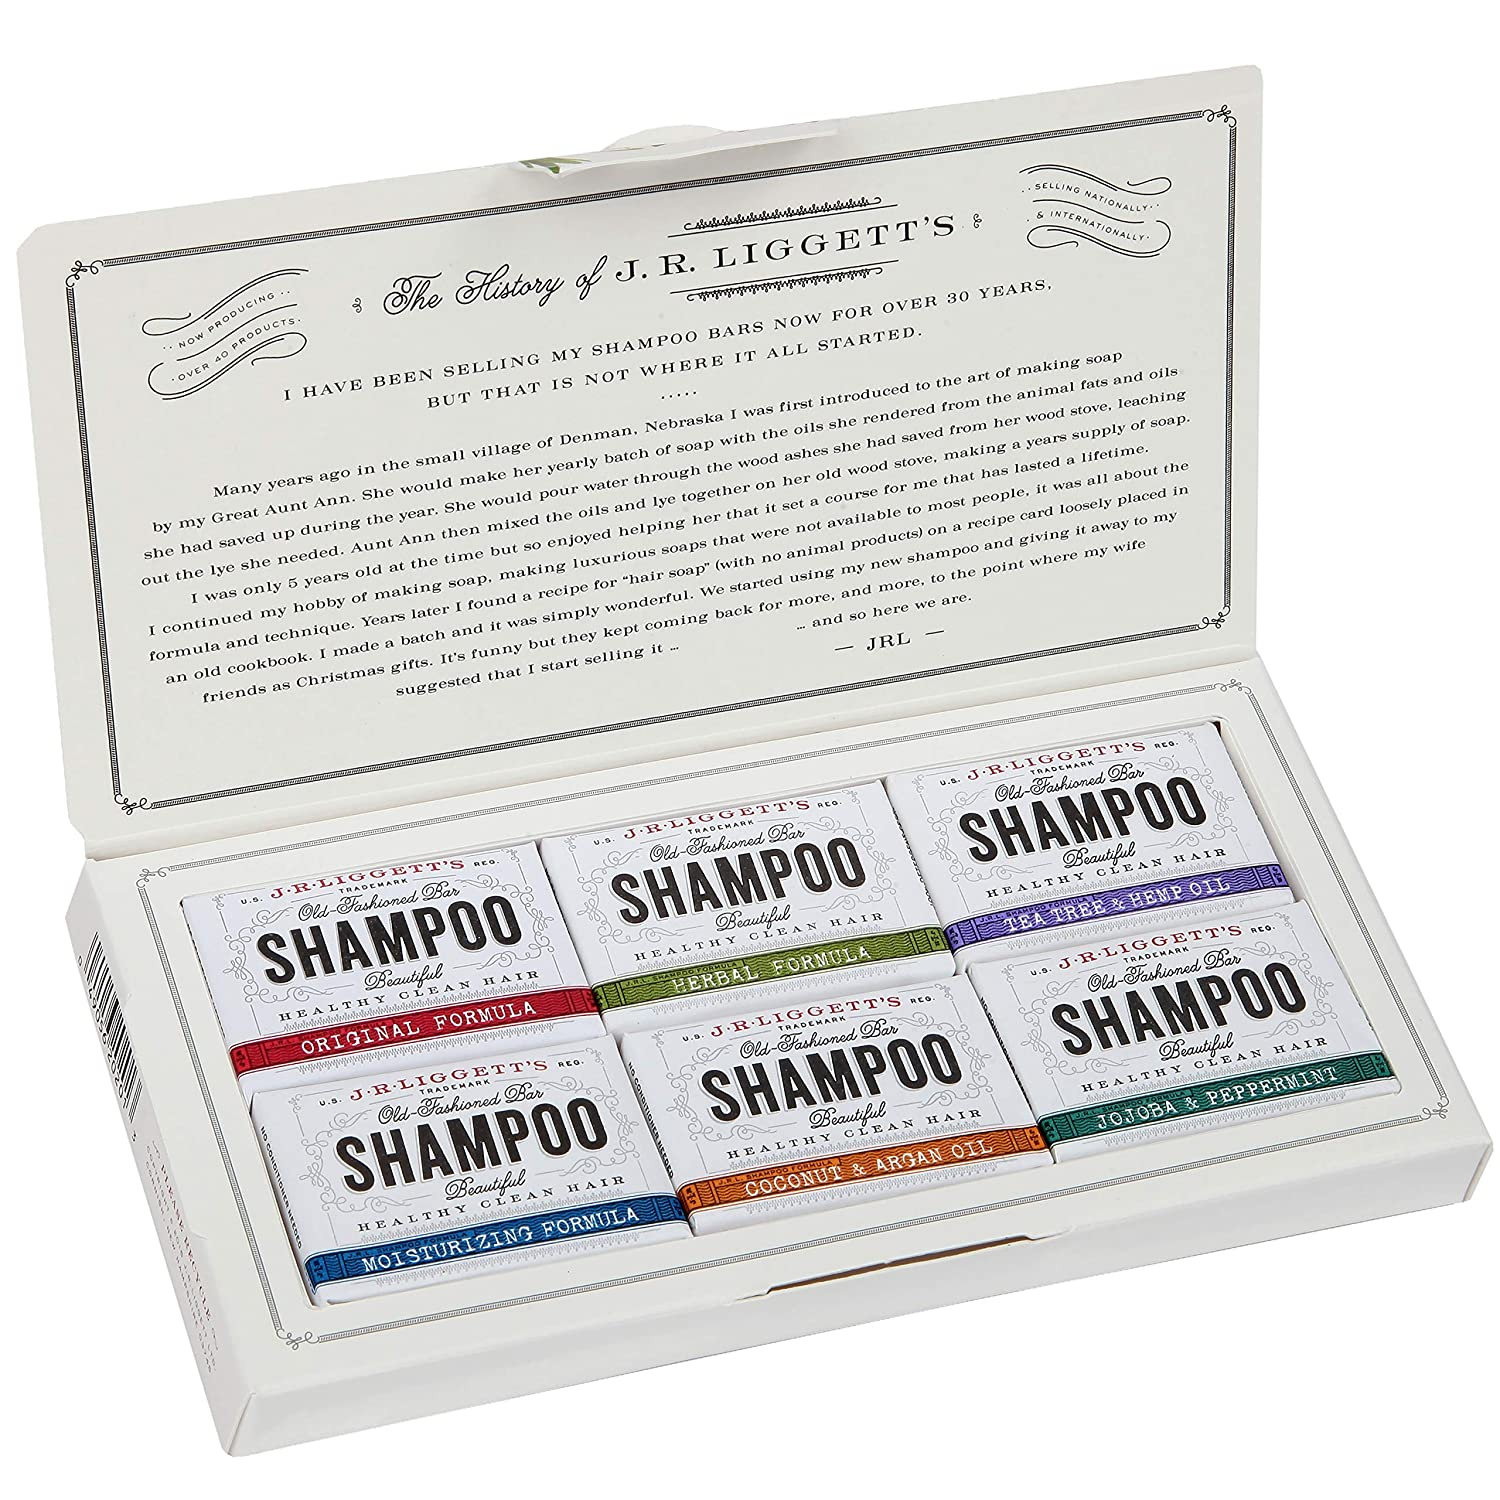 J·R·LIGGETT'S All-Natural 6 Variety Shampoo Bars .65oz. Sampler Pack, Support Strong and Healthy Hair-Nourish Follicles with Antioxidants and Vitamins-Detergent and Sulfate-Free, 6 Mini Shampoo Bars